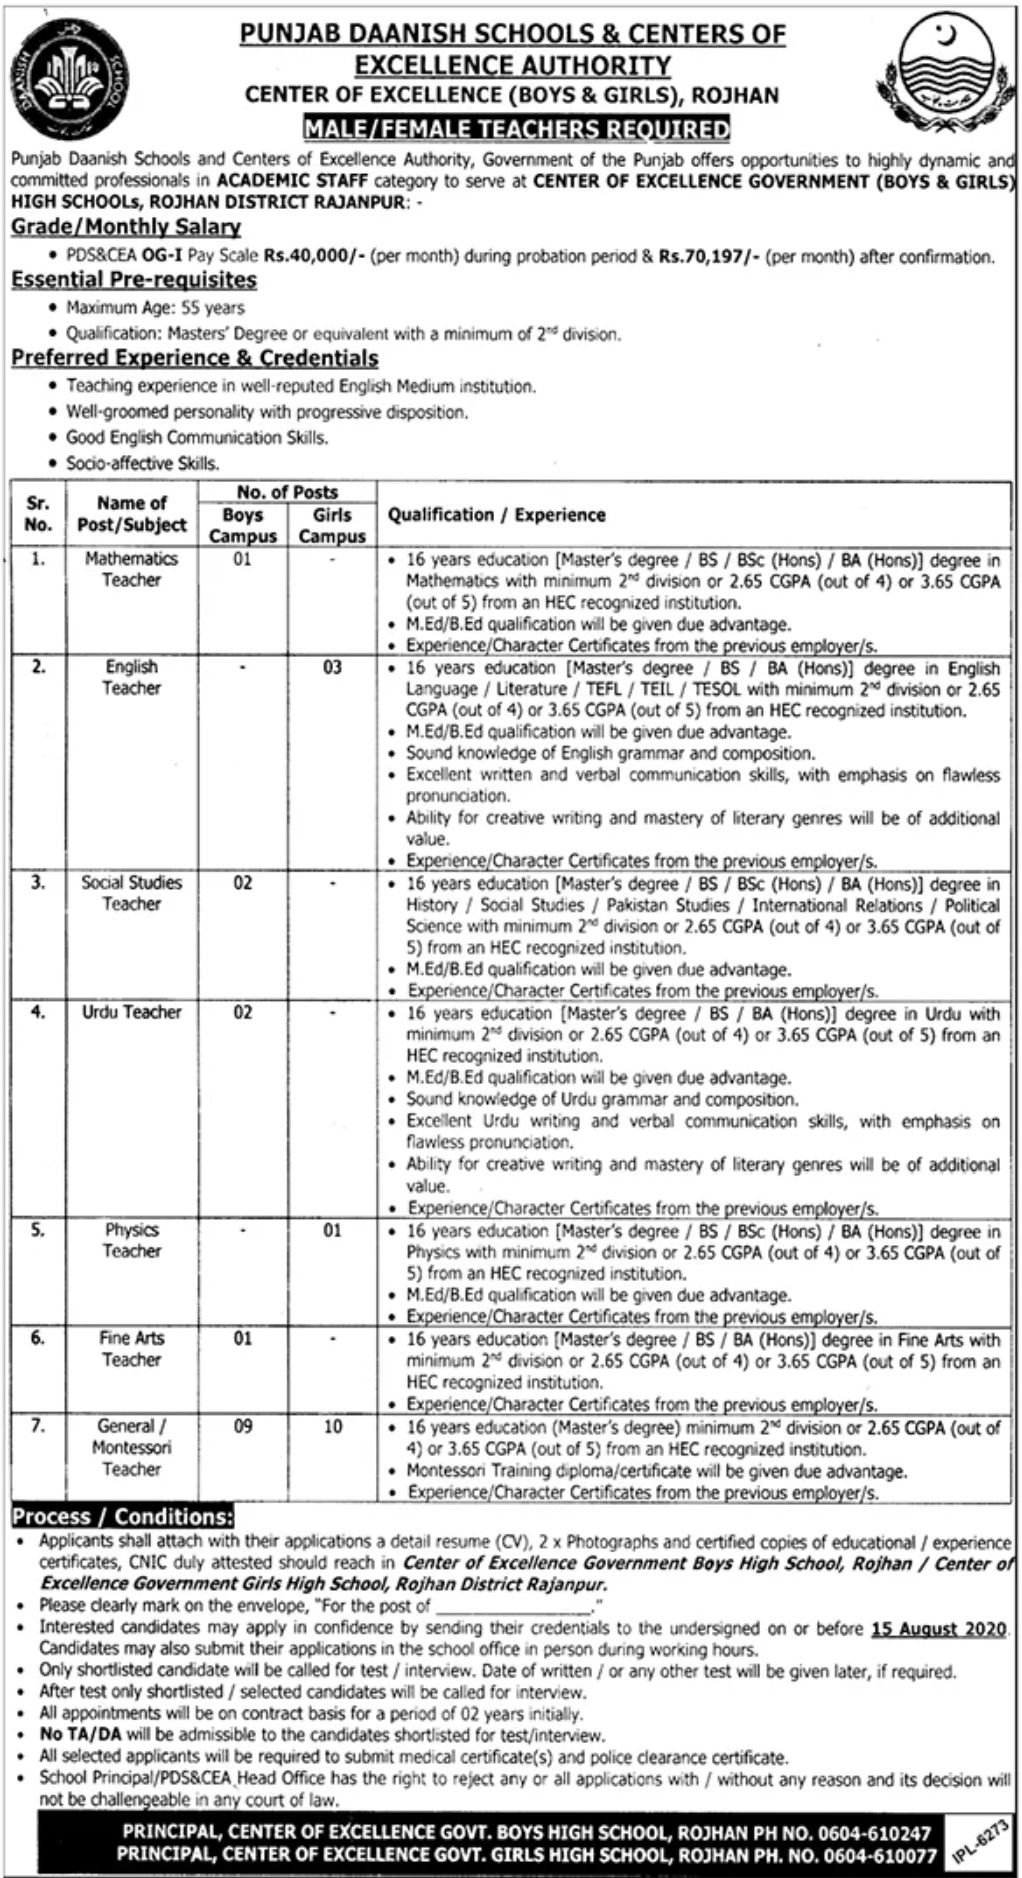 Punjab Daanish Schools & Centers of Excellence Authority Jobs July 2020